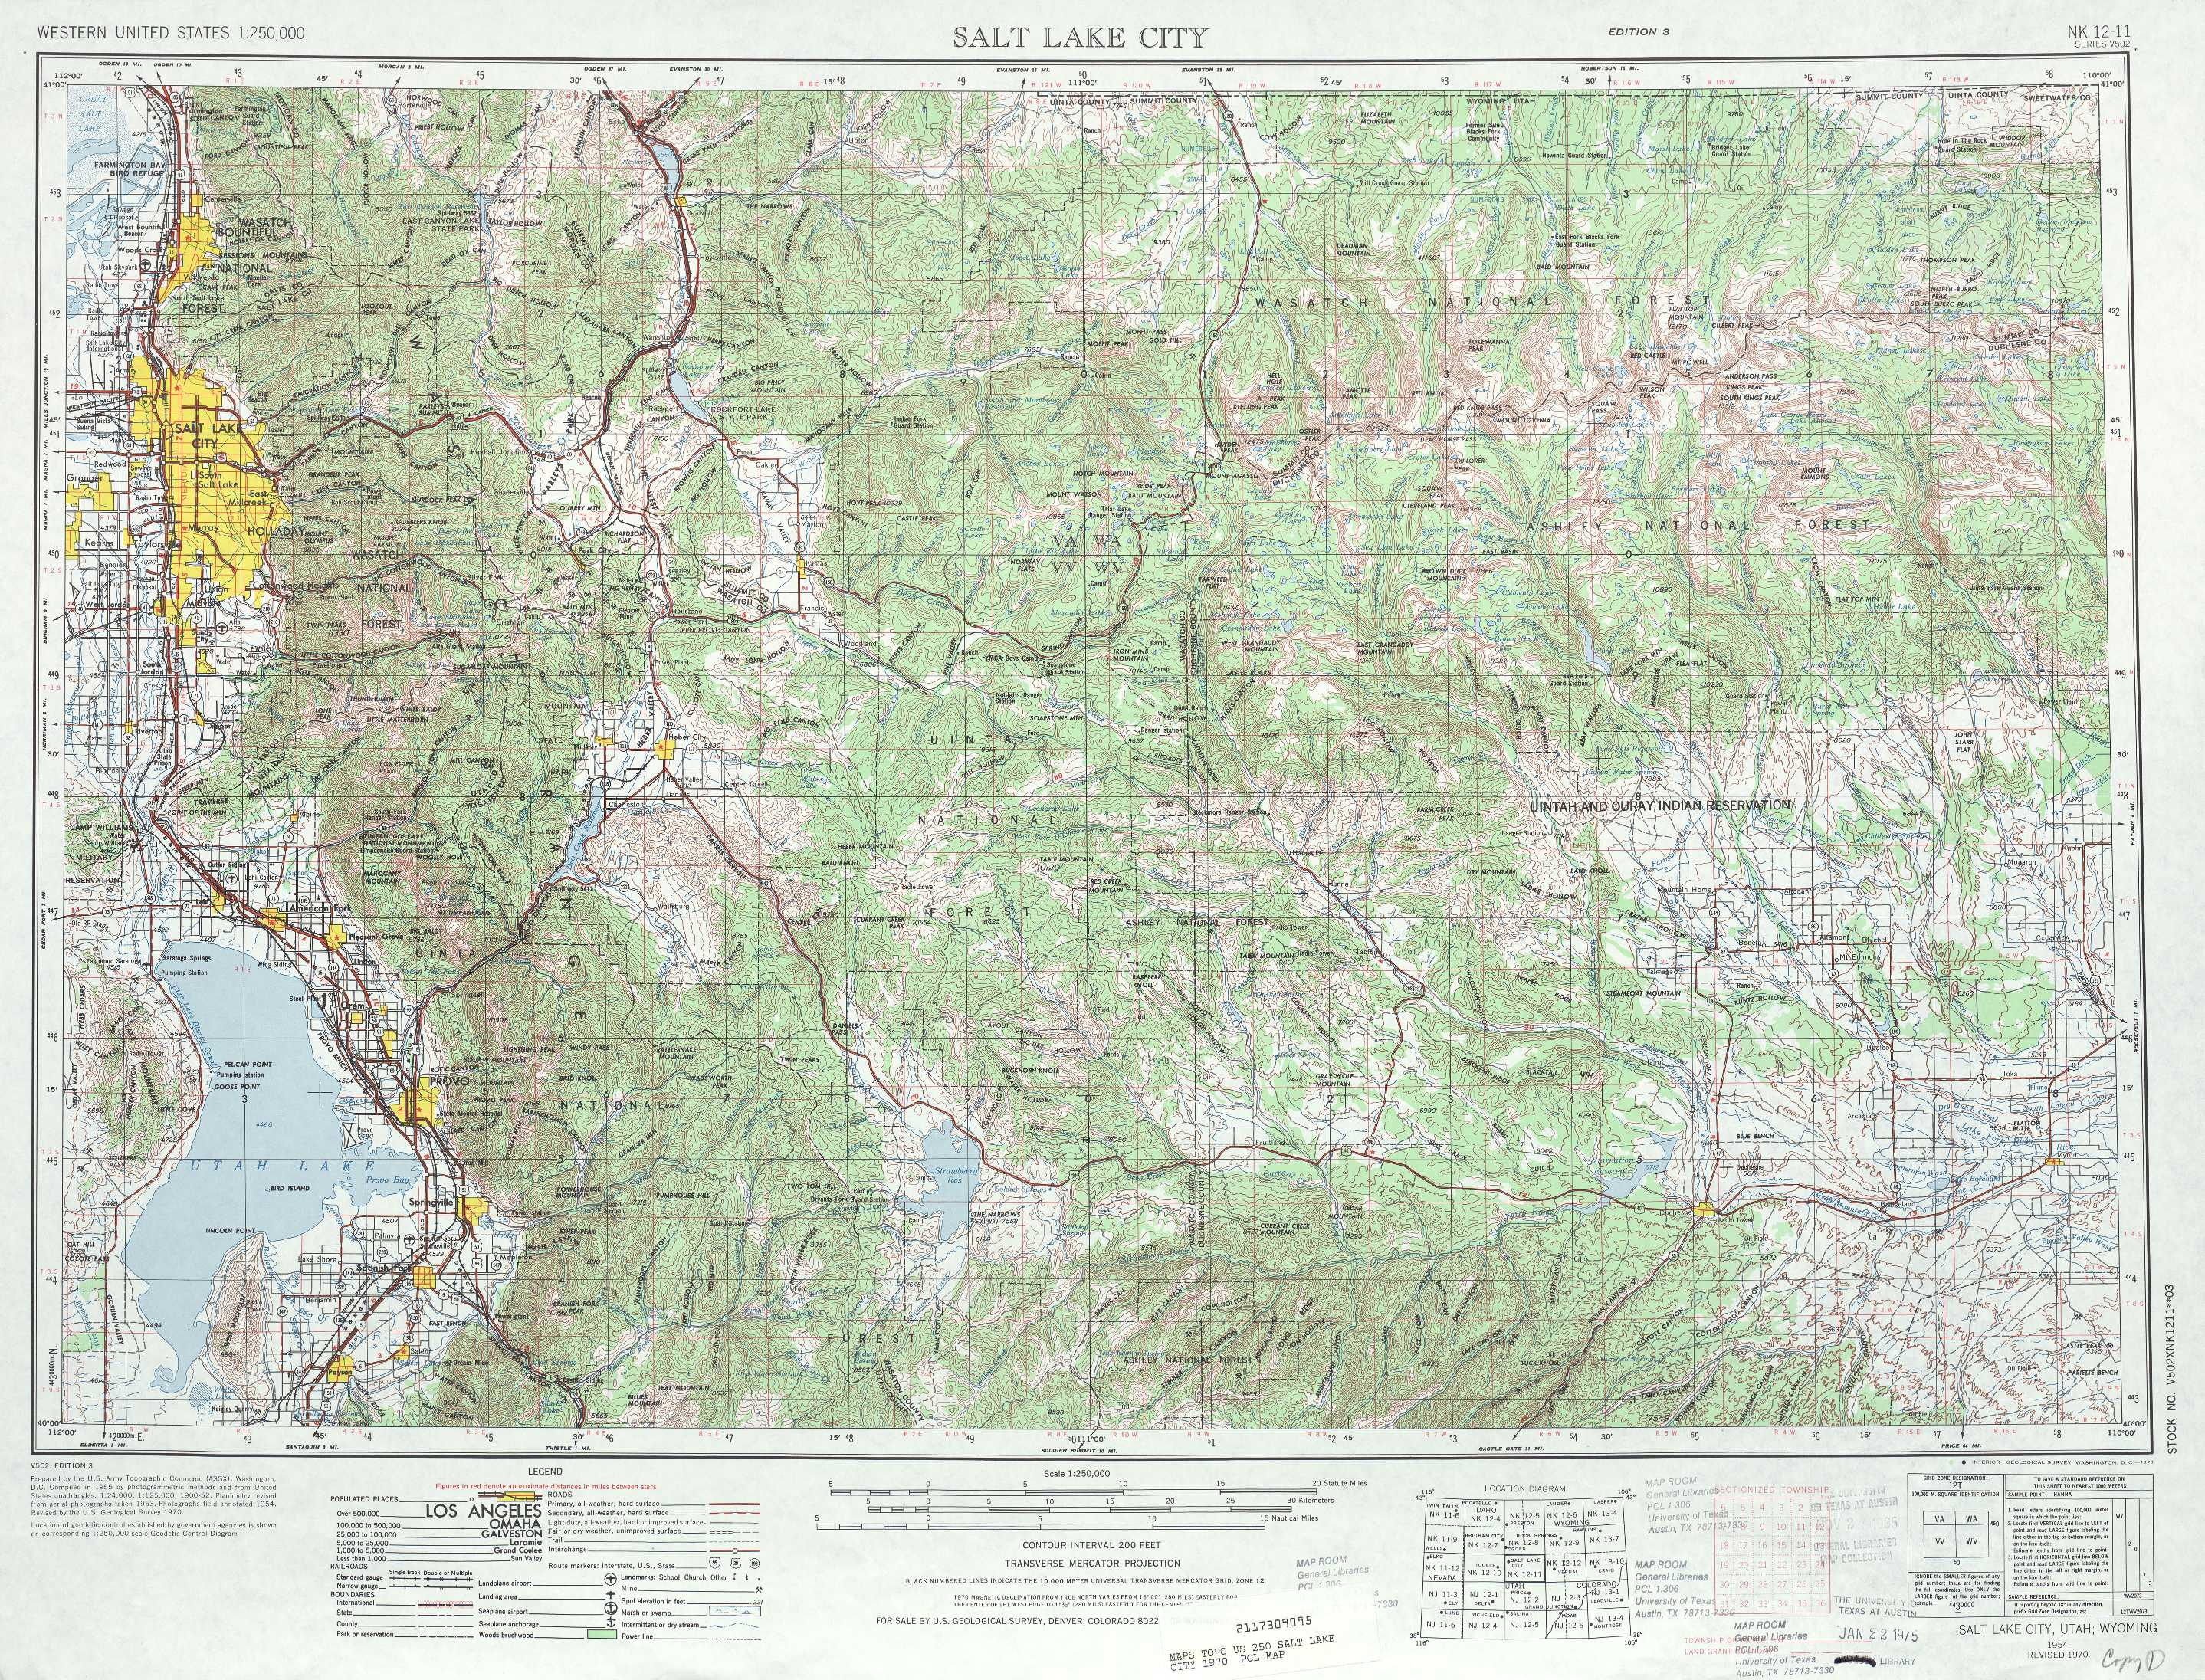 Salt Lake City Topographic Maps UT USGS Topo Quad A At - Us map salt lake city